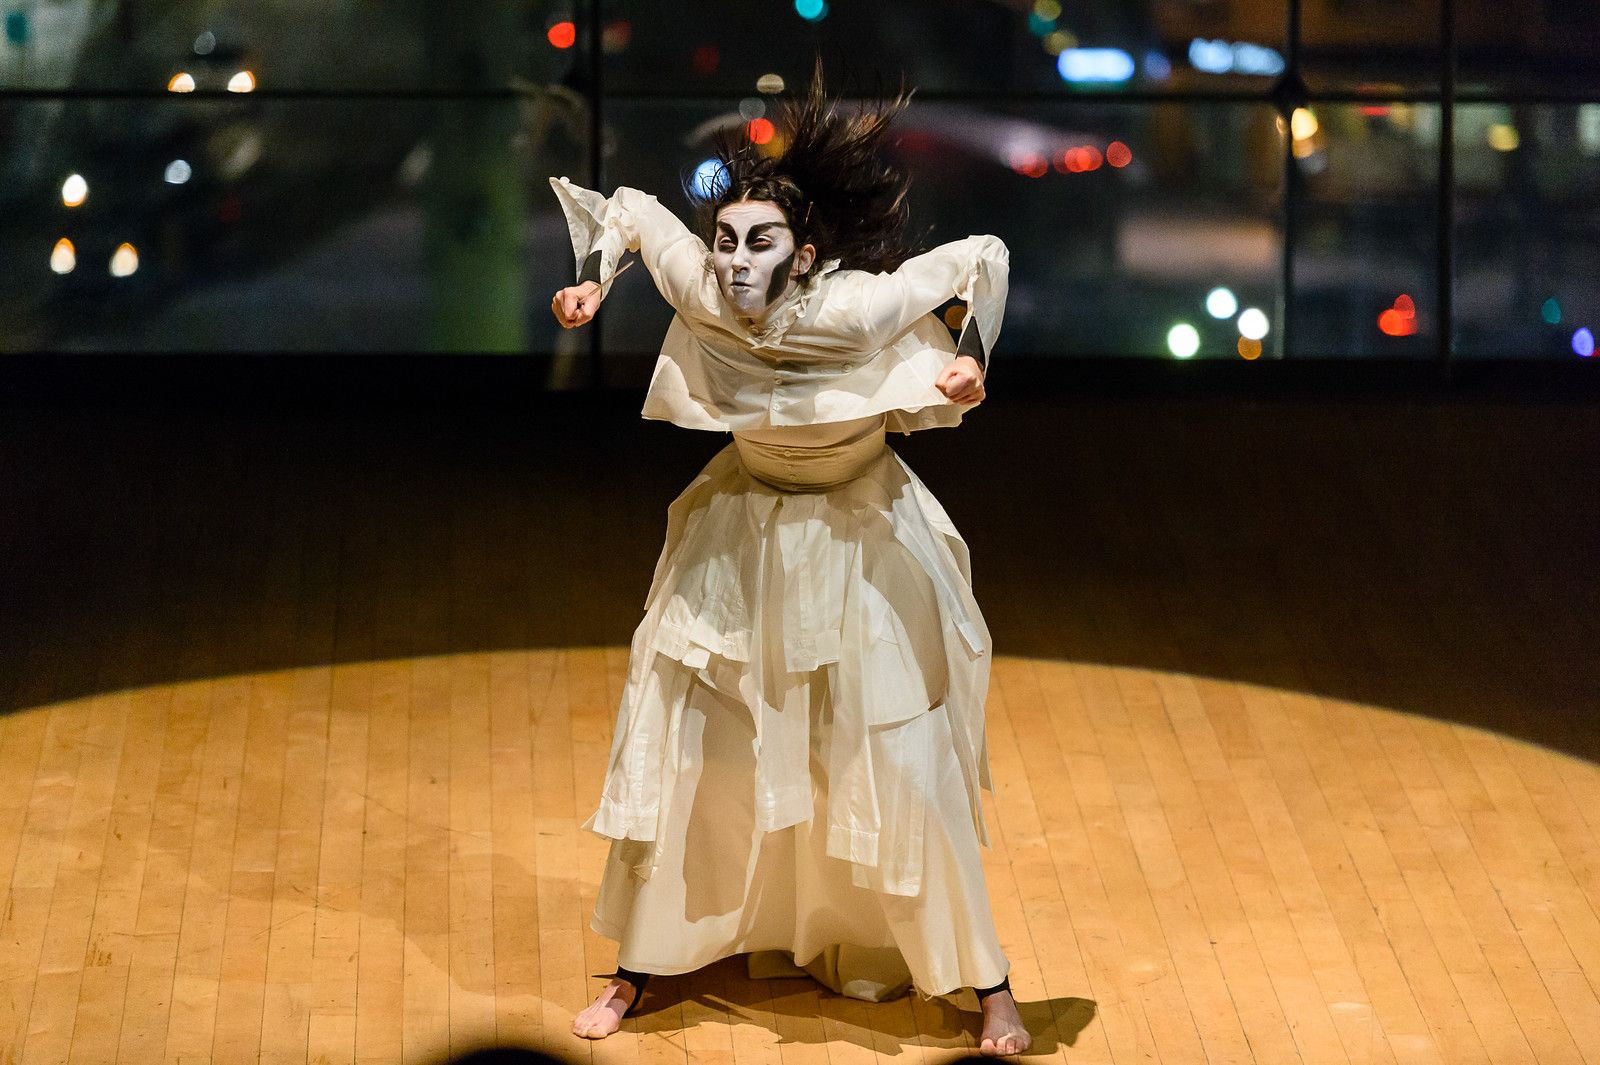 Vision/Visualization in Butoh